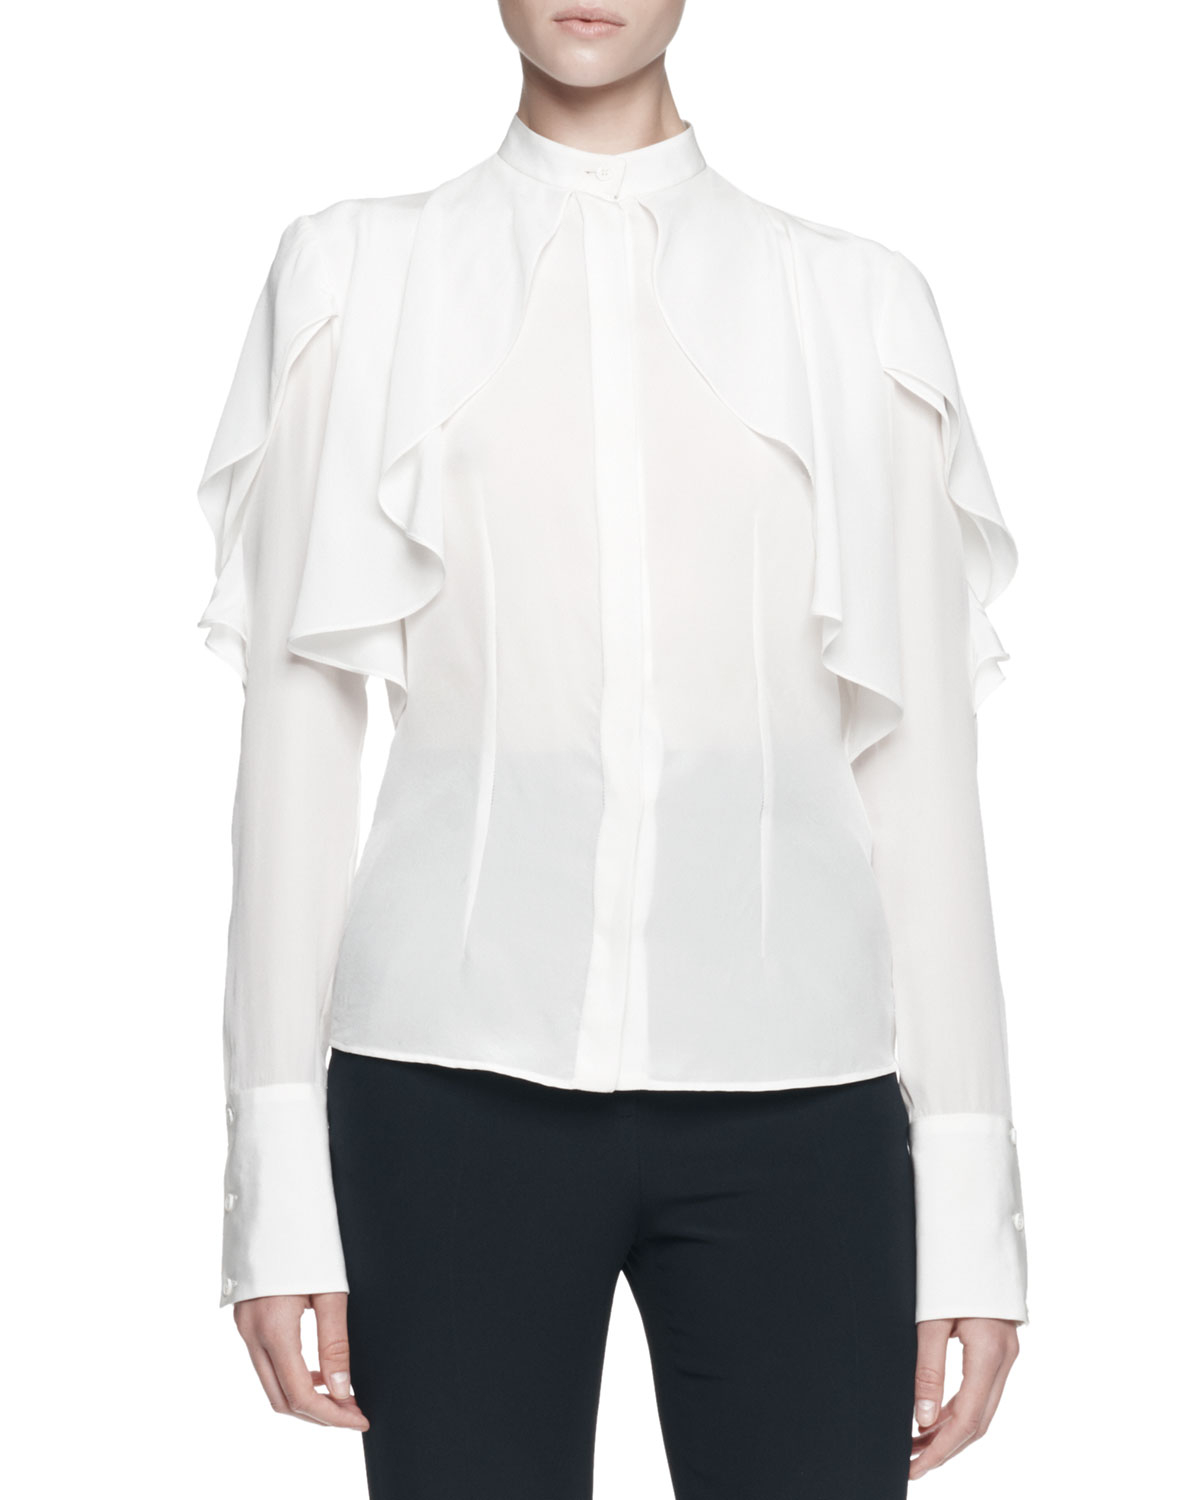 Alexander mcqueen Long-sleeve Draped Ruffle Blouse in White | Lyst